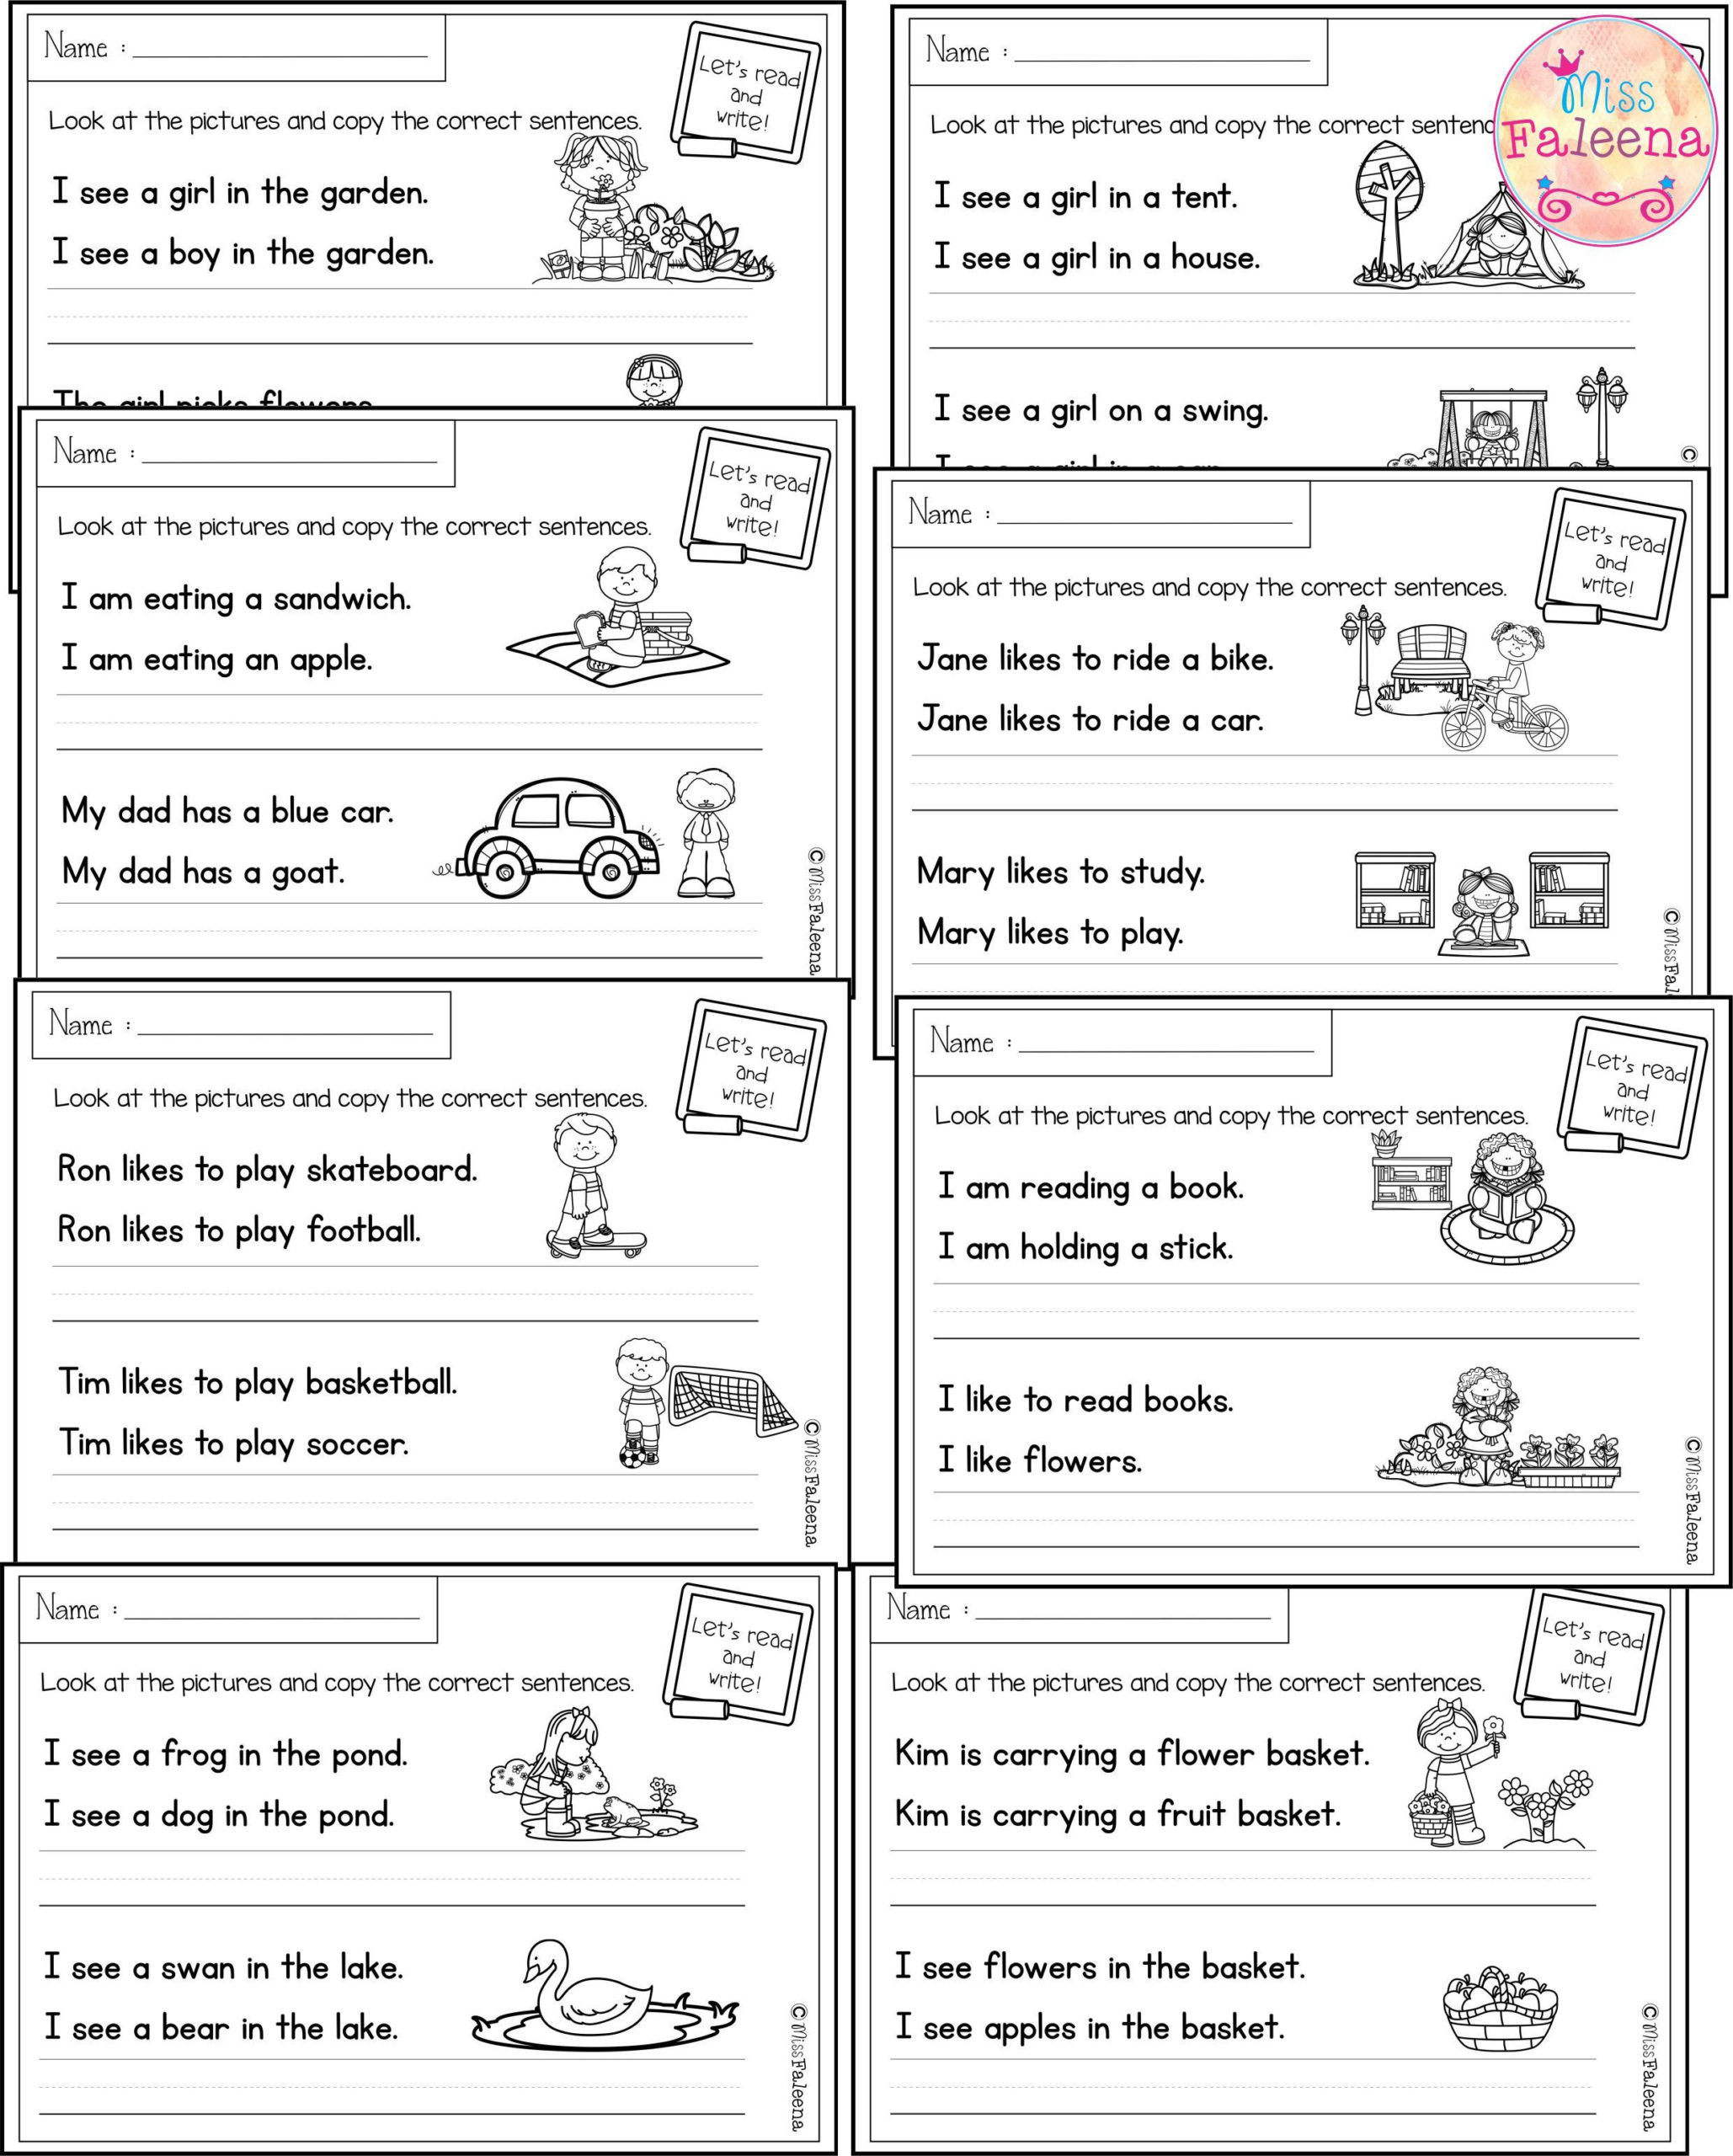 Weather Worksheets for Middle School Worksheet Games for Kids at Christmas Party toddler